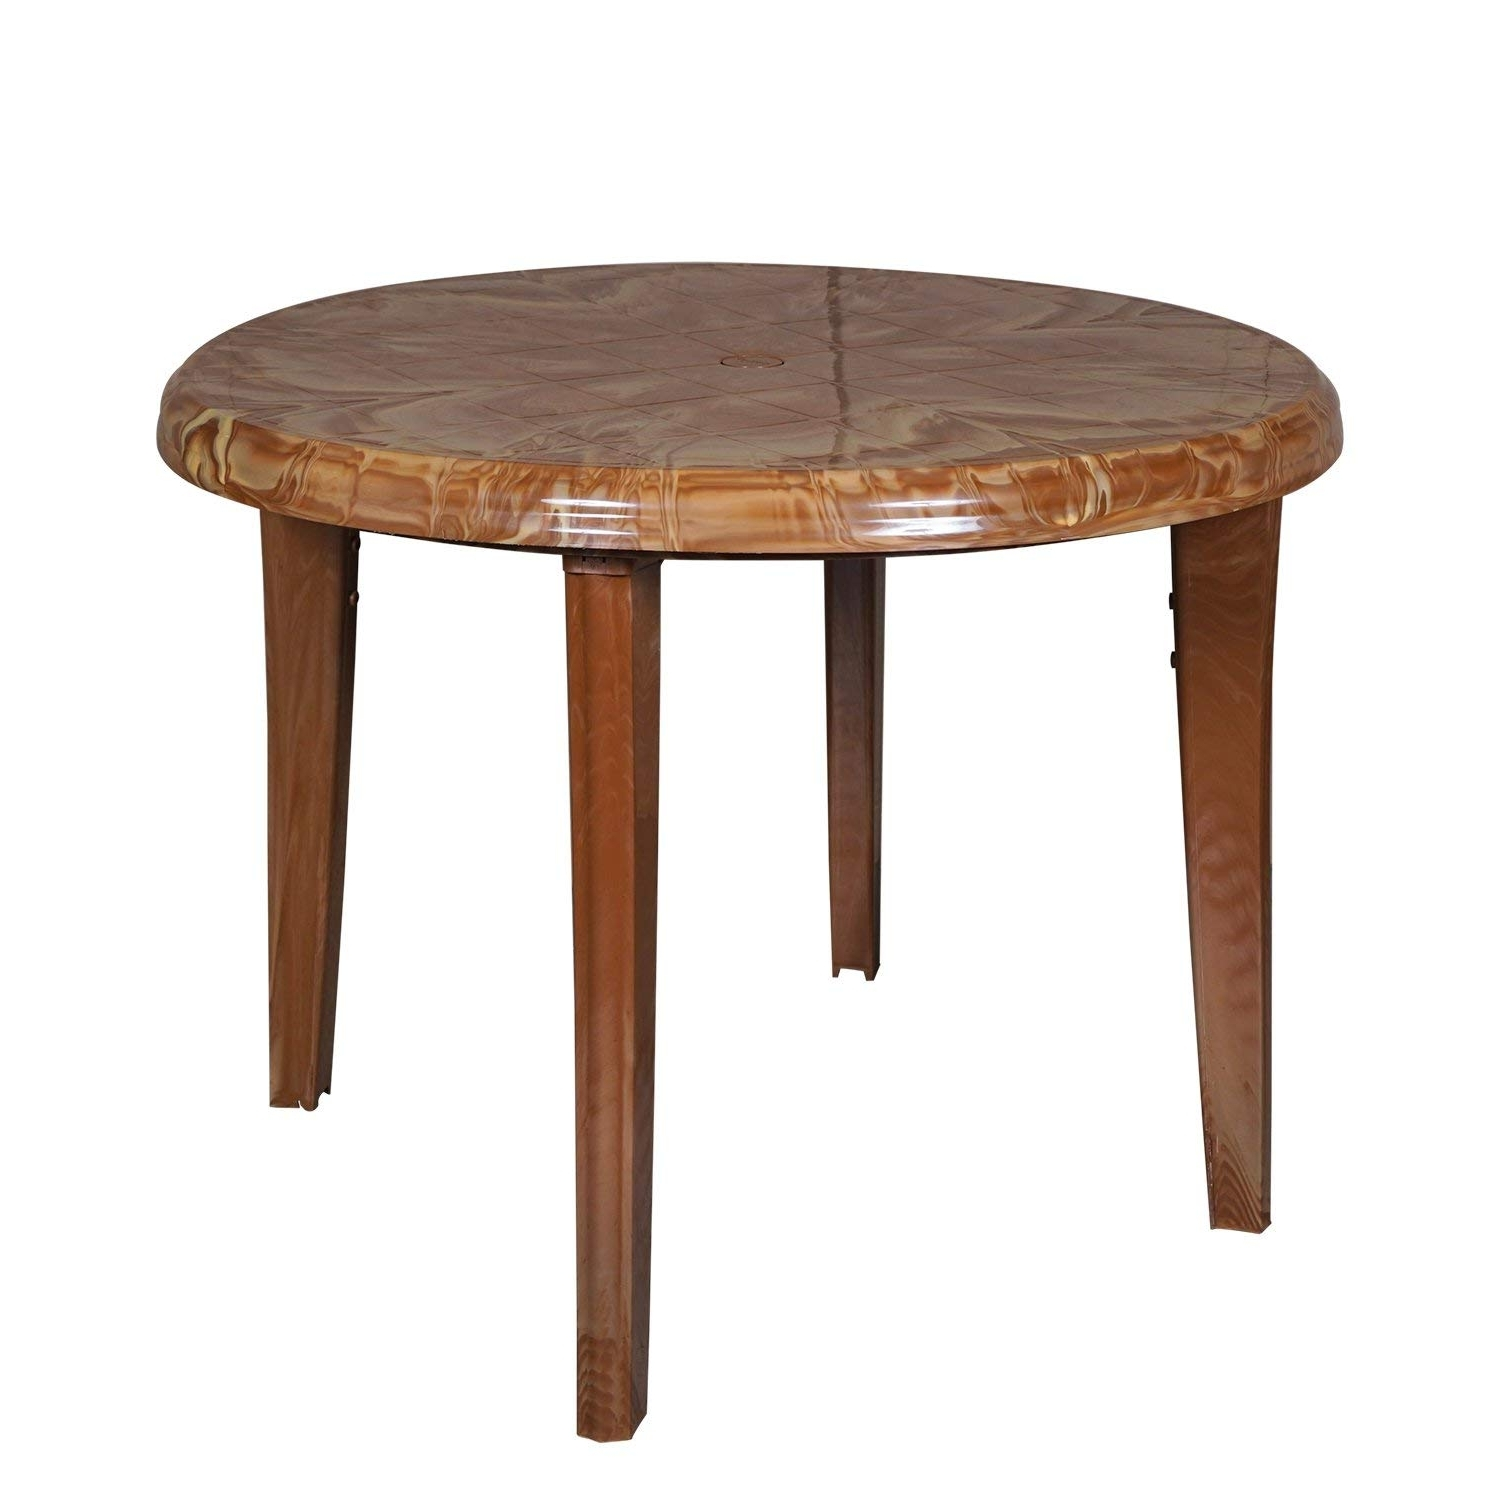 Dining Tables : Buy Dining Tables Online At Low Prices In India Throughout Most Recently Released Indian Dining Tables (View 4 of 25)